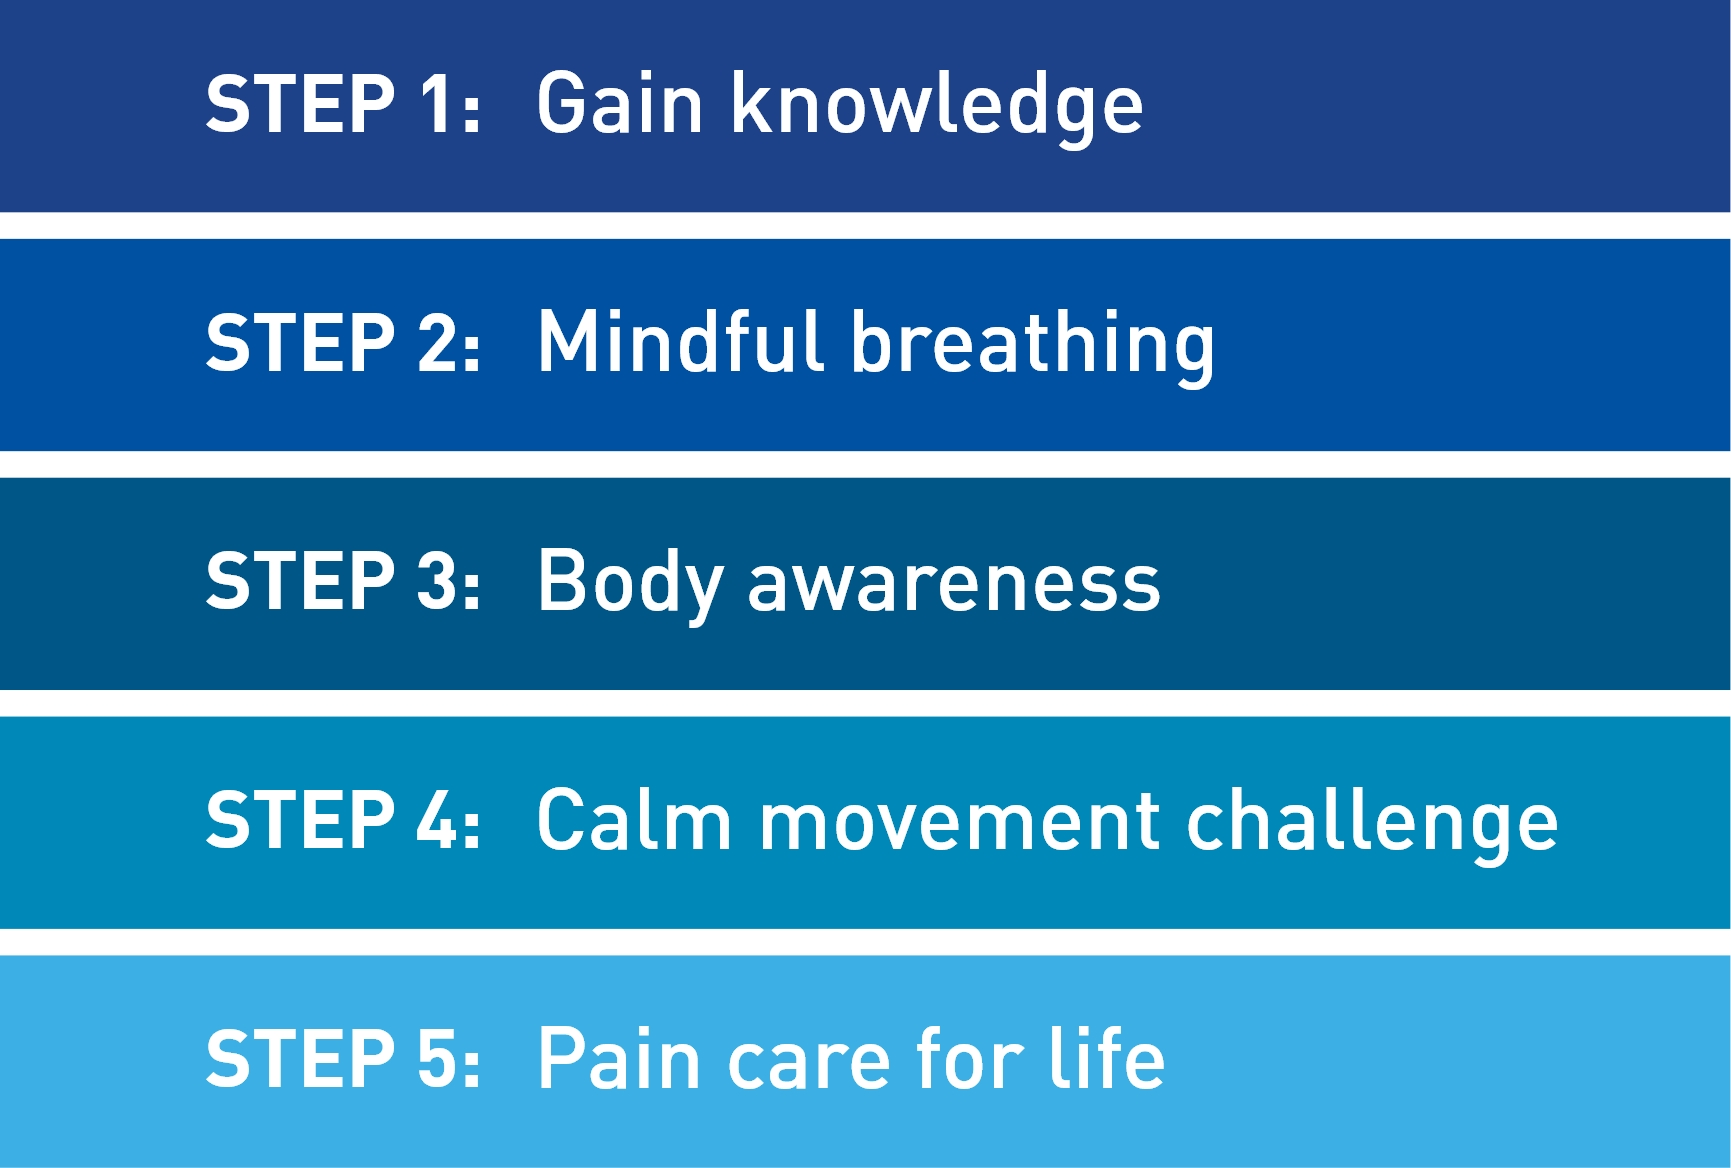 5 steps of the Pain Care for Life program